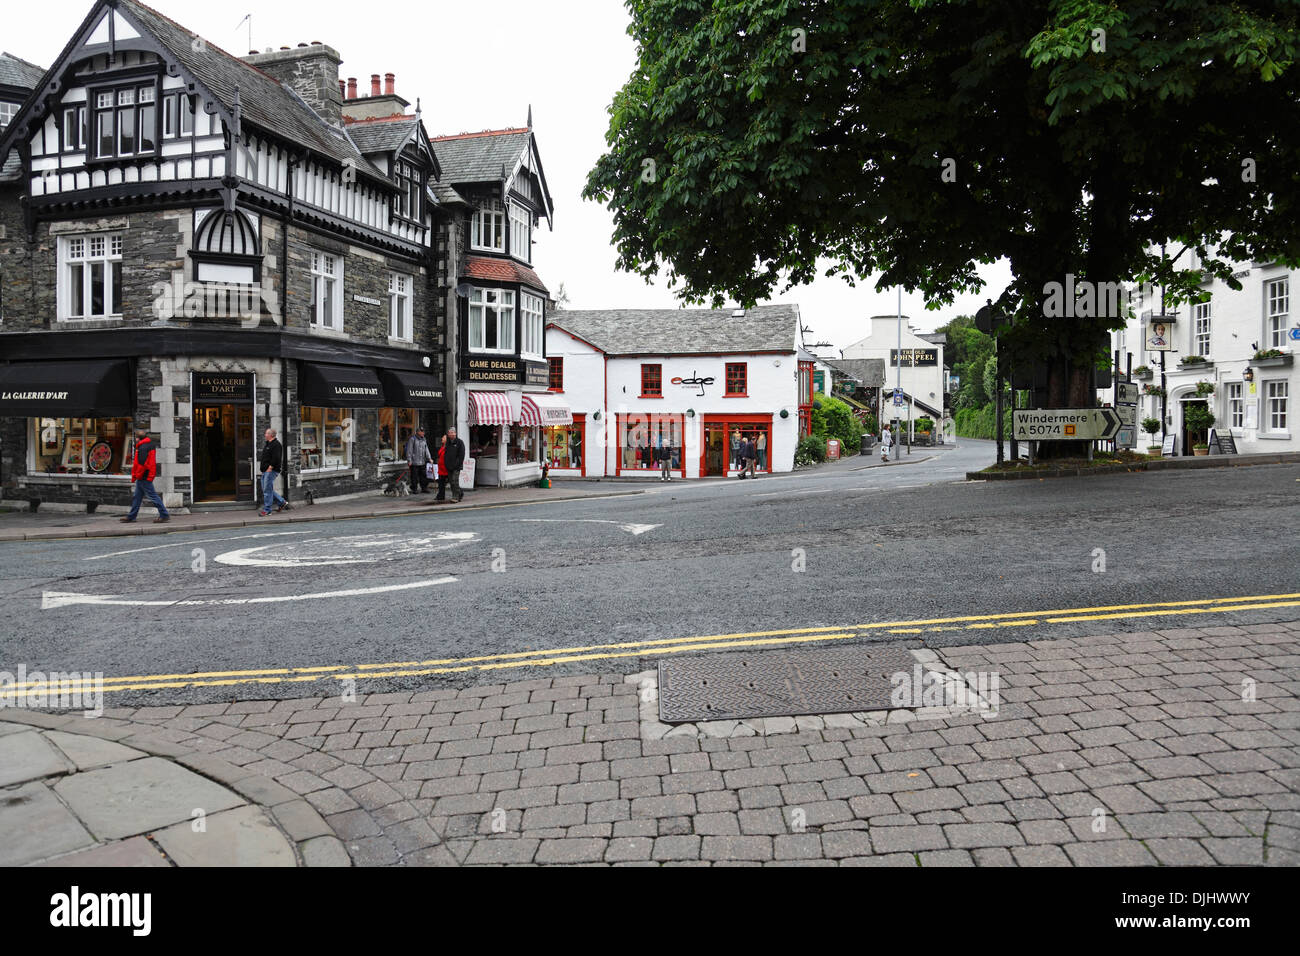 Junction of Lake Road (L), Rayrigg Road (Centre) and Crag Brow (R), Bowness-On-Windermere, Lake District, Cumbria, England, UK - Stock Image